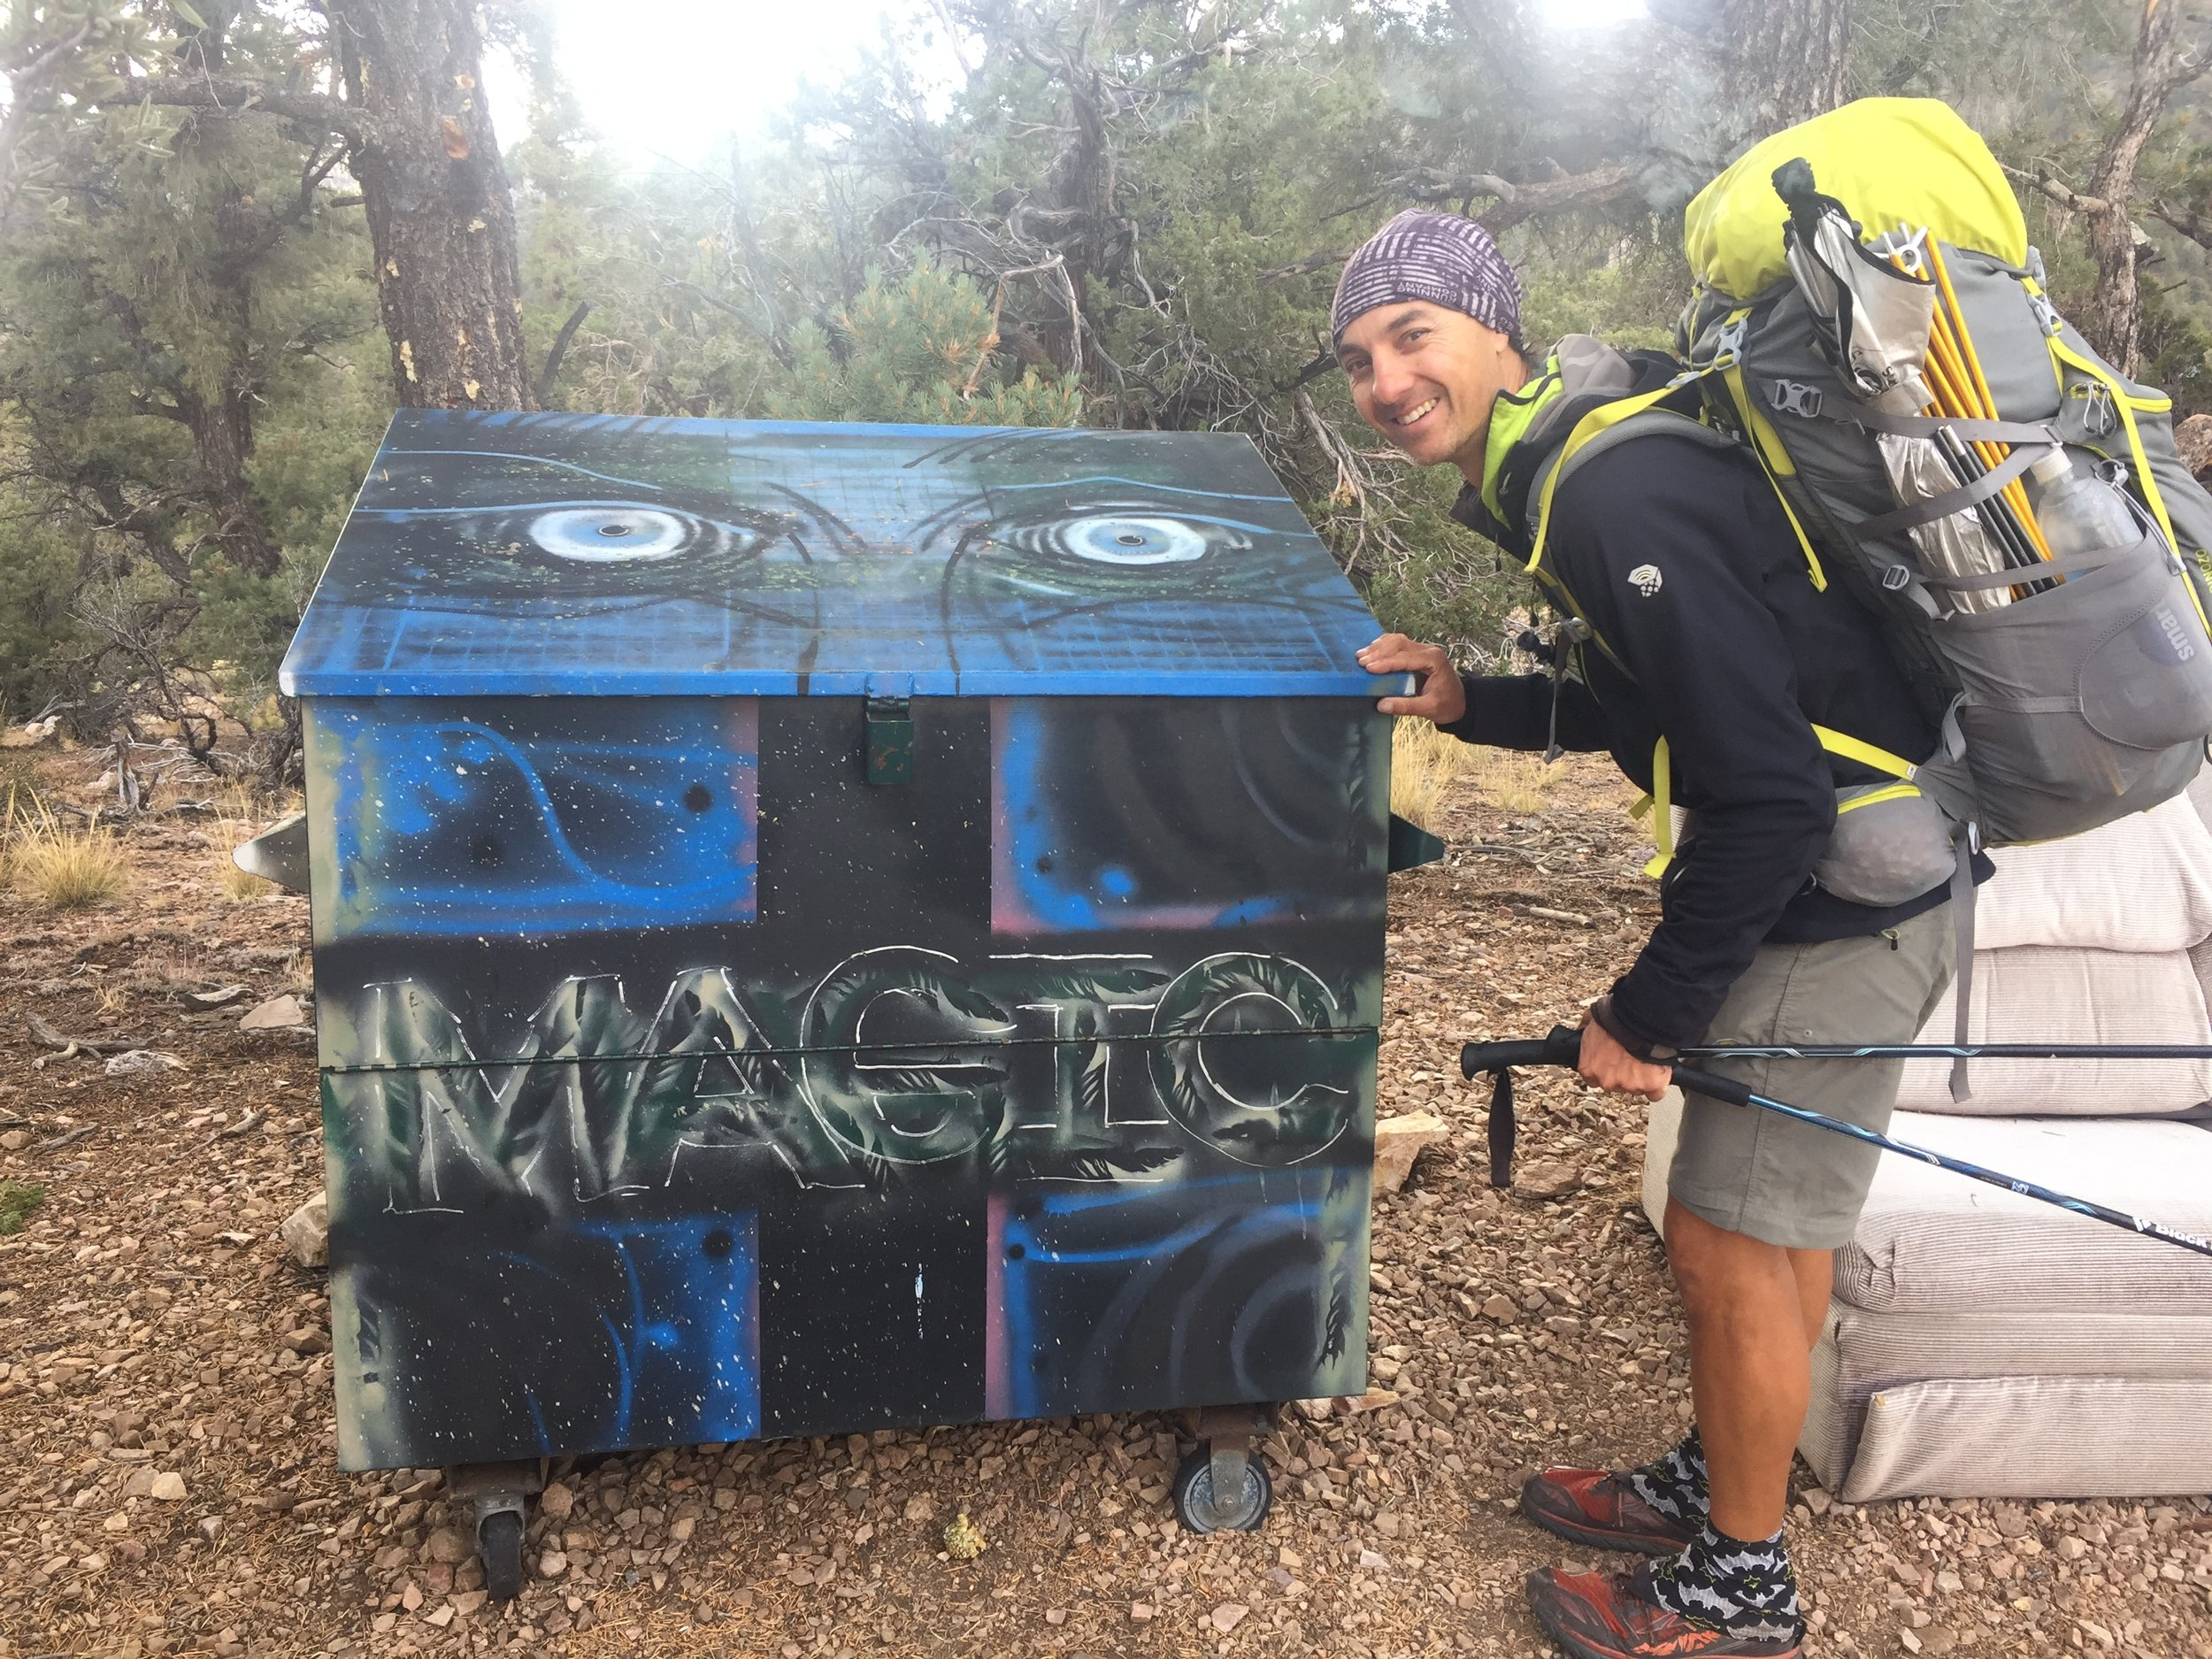 The most artistic trail magic dumpster we've ever seen. We might have sat on the couch if it wasn't raining.